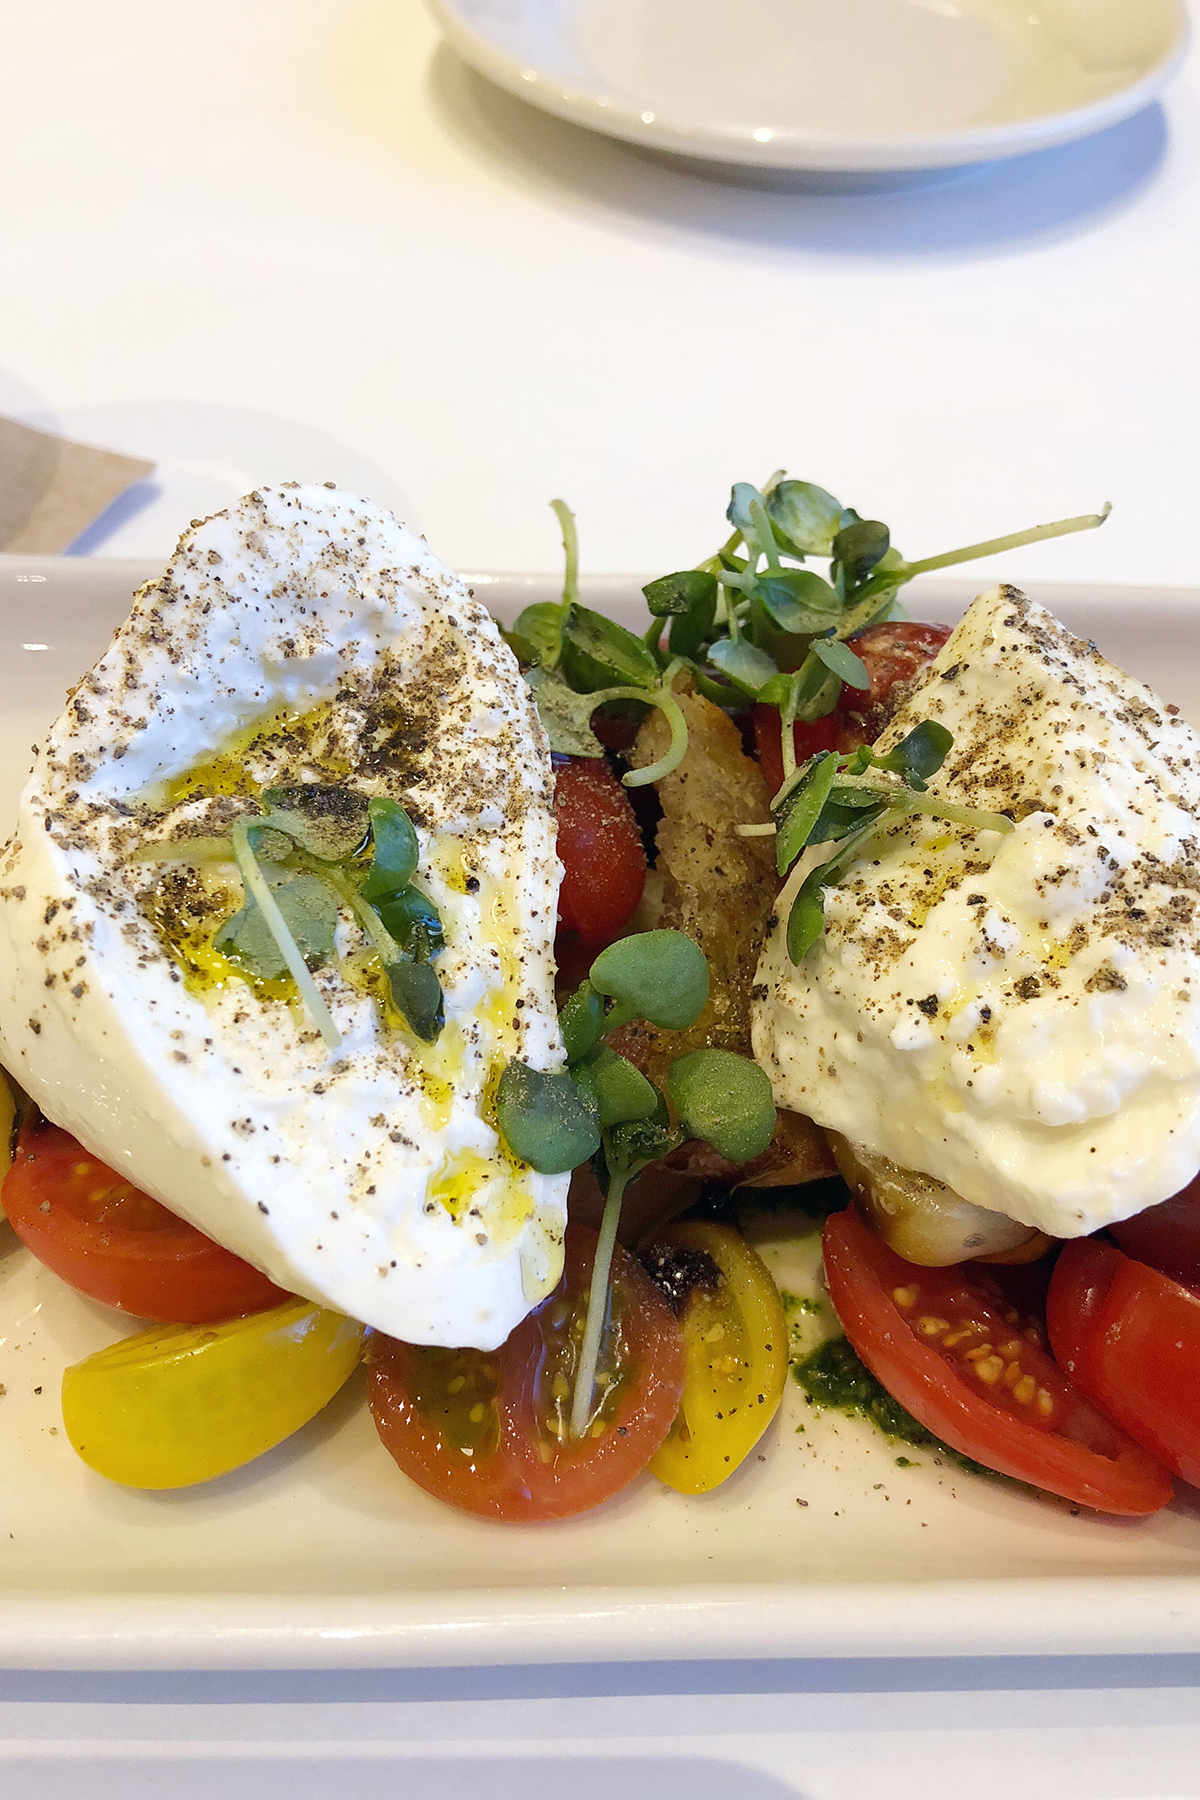 nordstrom cafe burrata